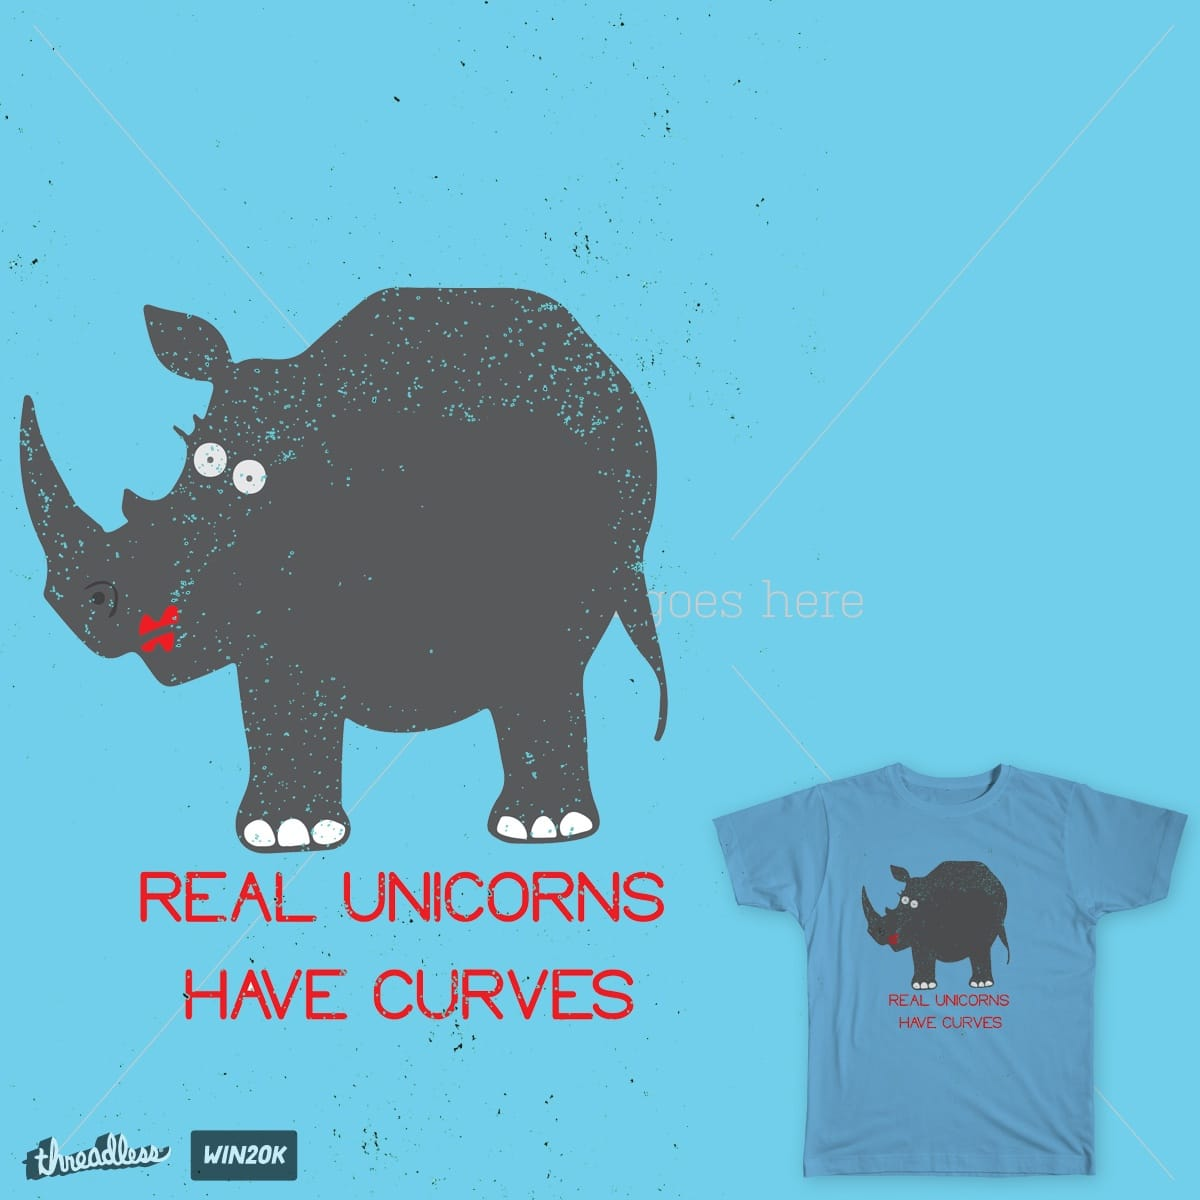 Real unicorns by Jamietaylor1985 on Threadless